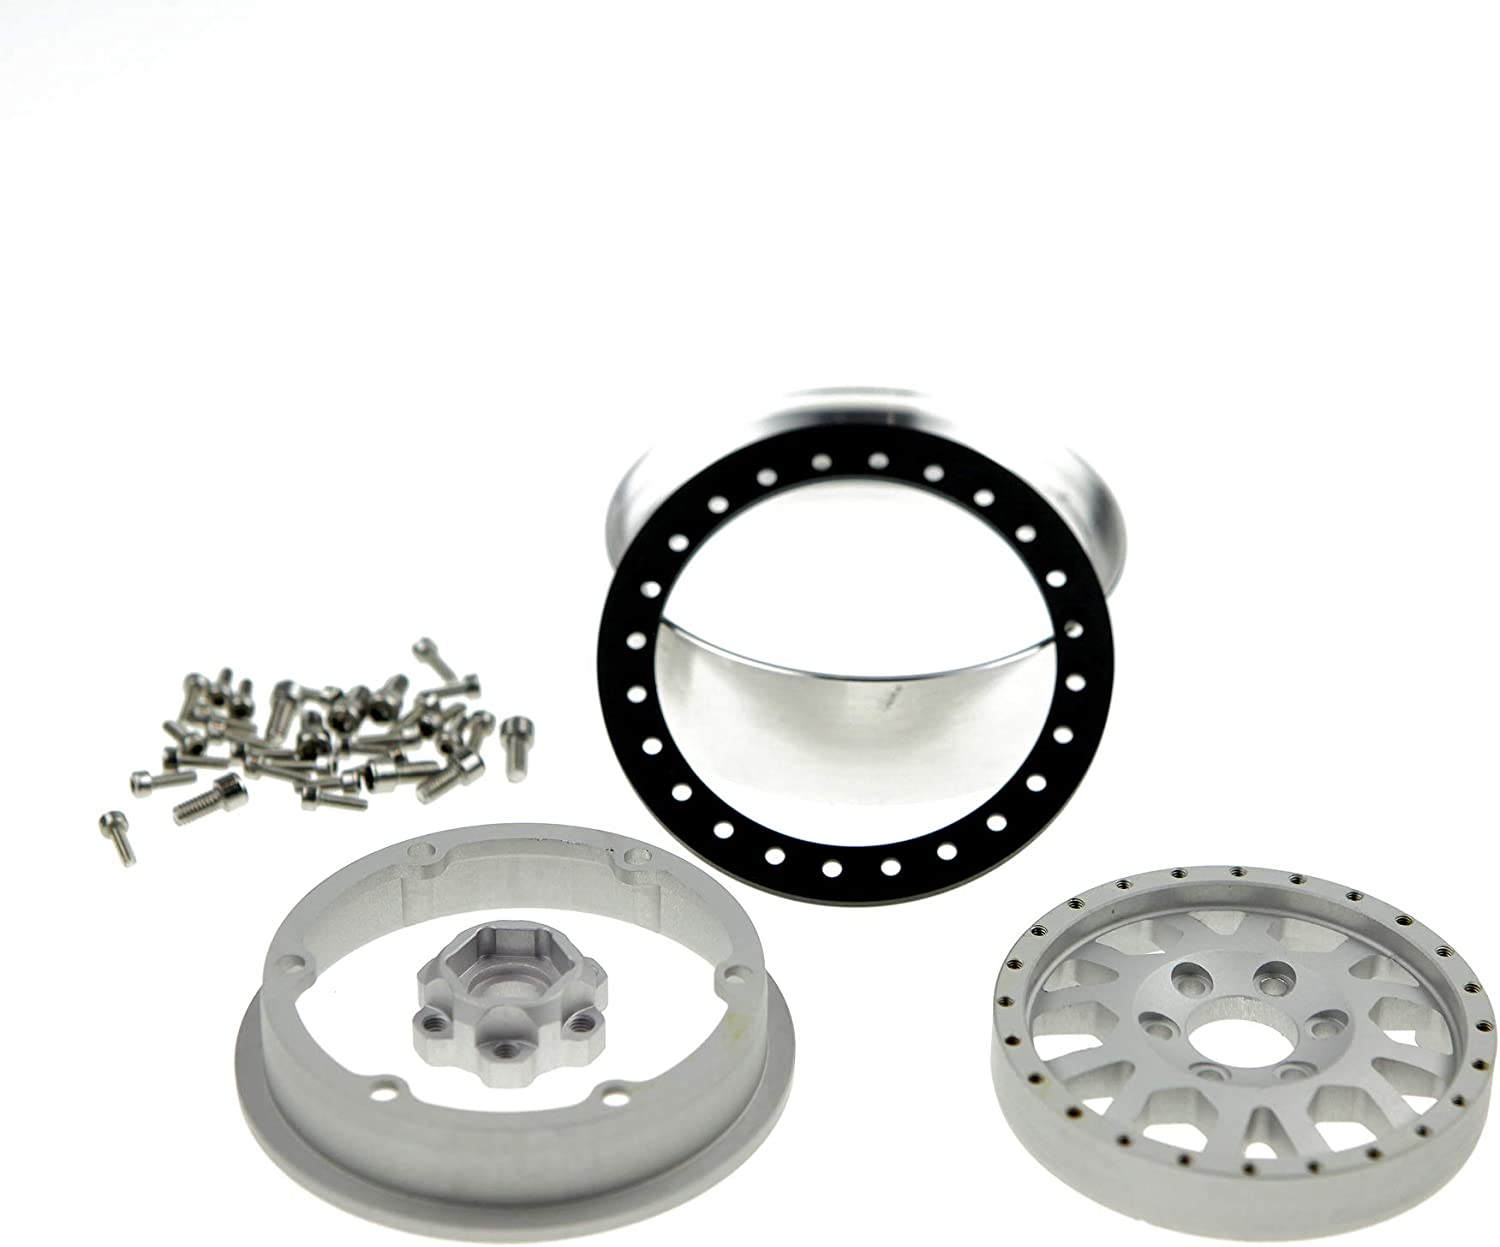 for RC Model #103 4 Pack 25.4mm GDS Racing 2.2 Inch Alloy Beadlock Wheel Rim Thickness 1